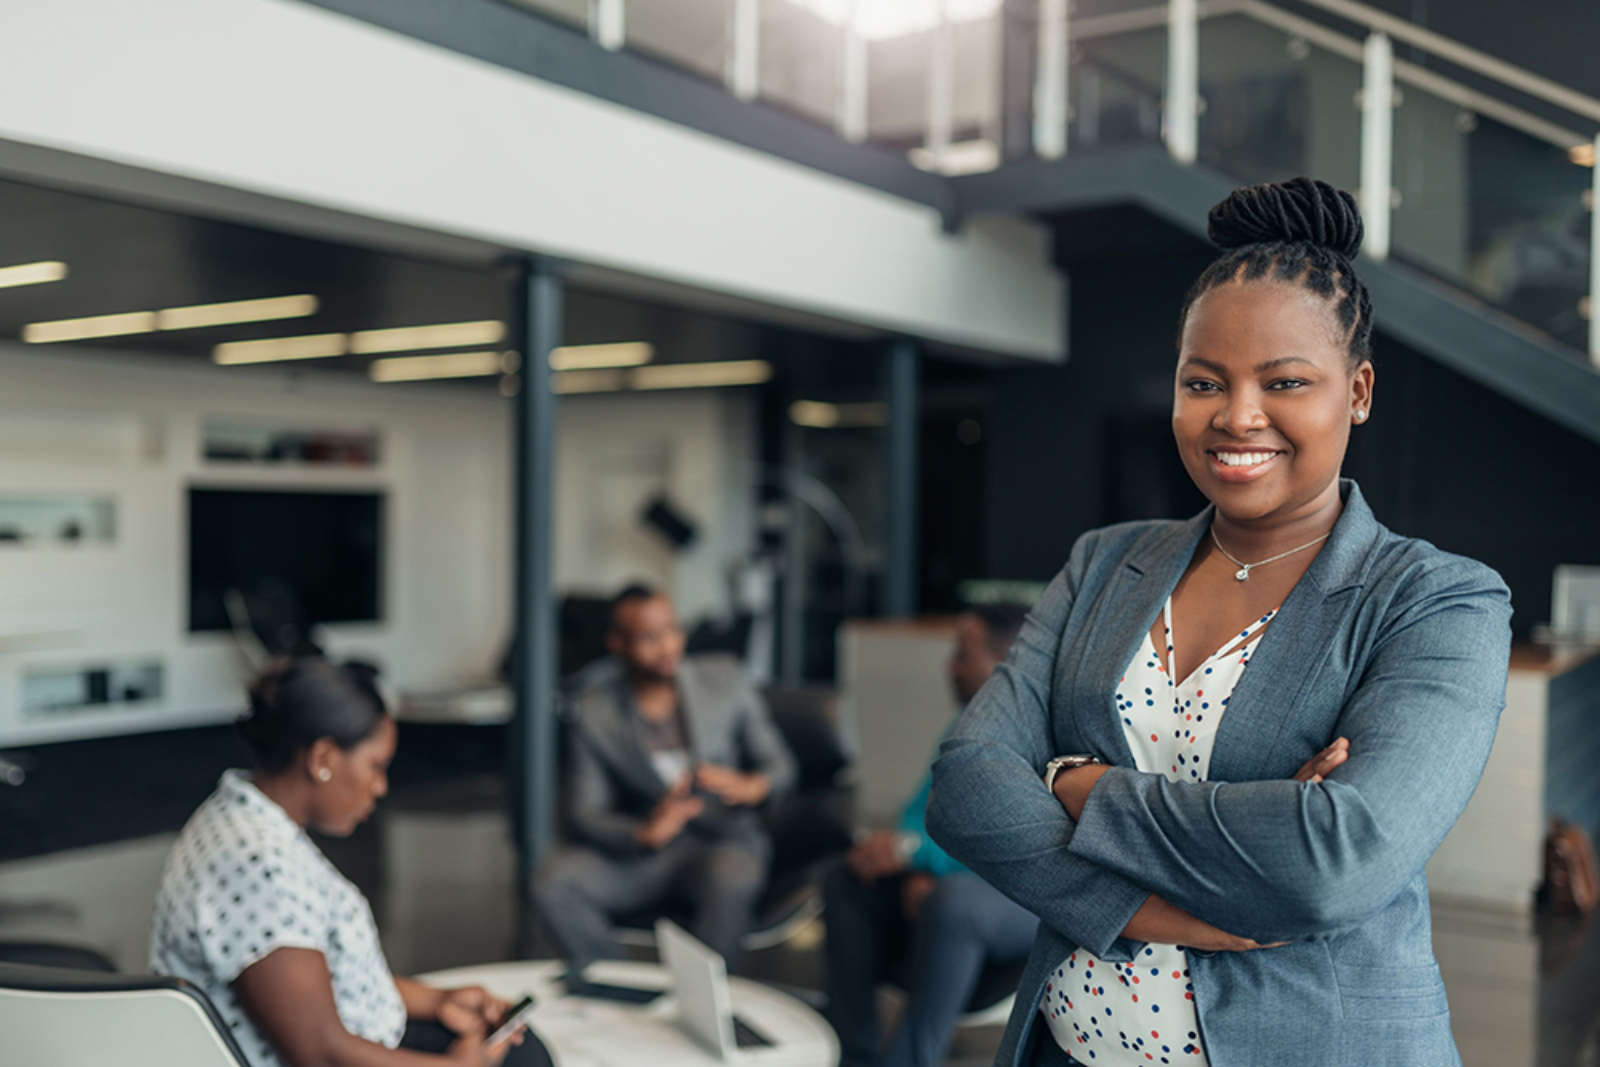 Confident business woman crosses arms smiling at camera in office with coworkers behind her